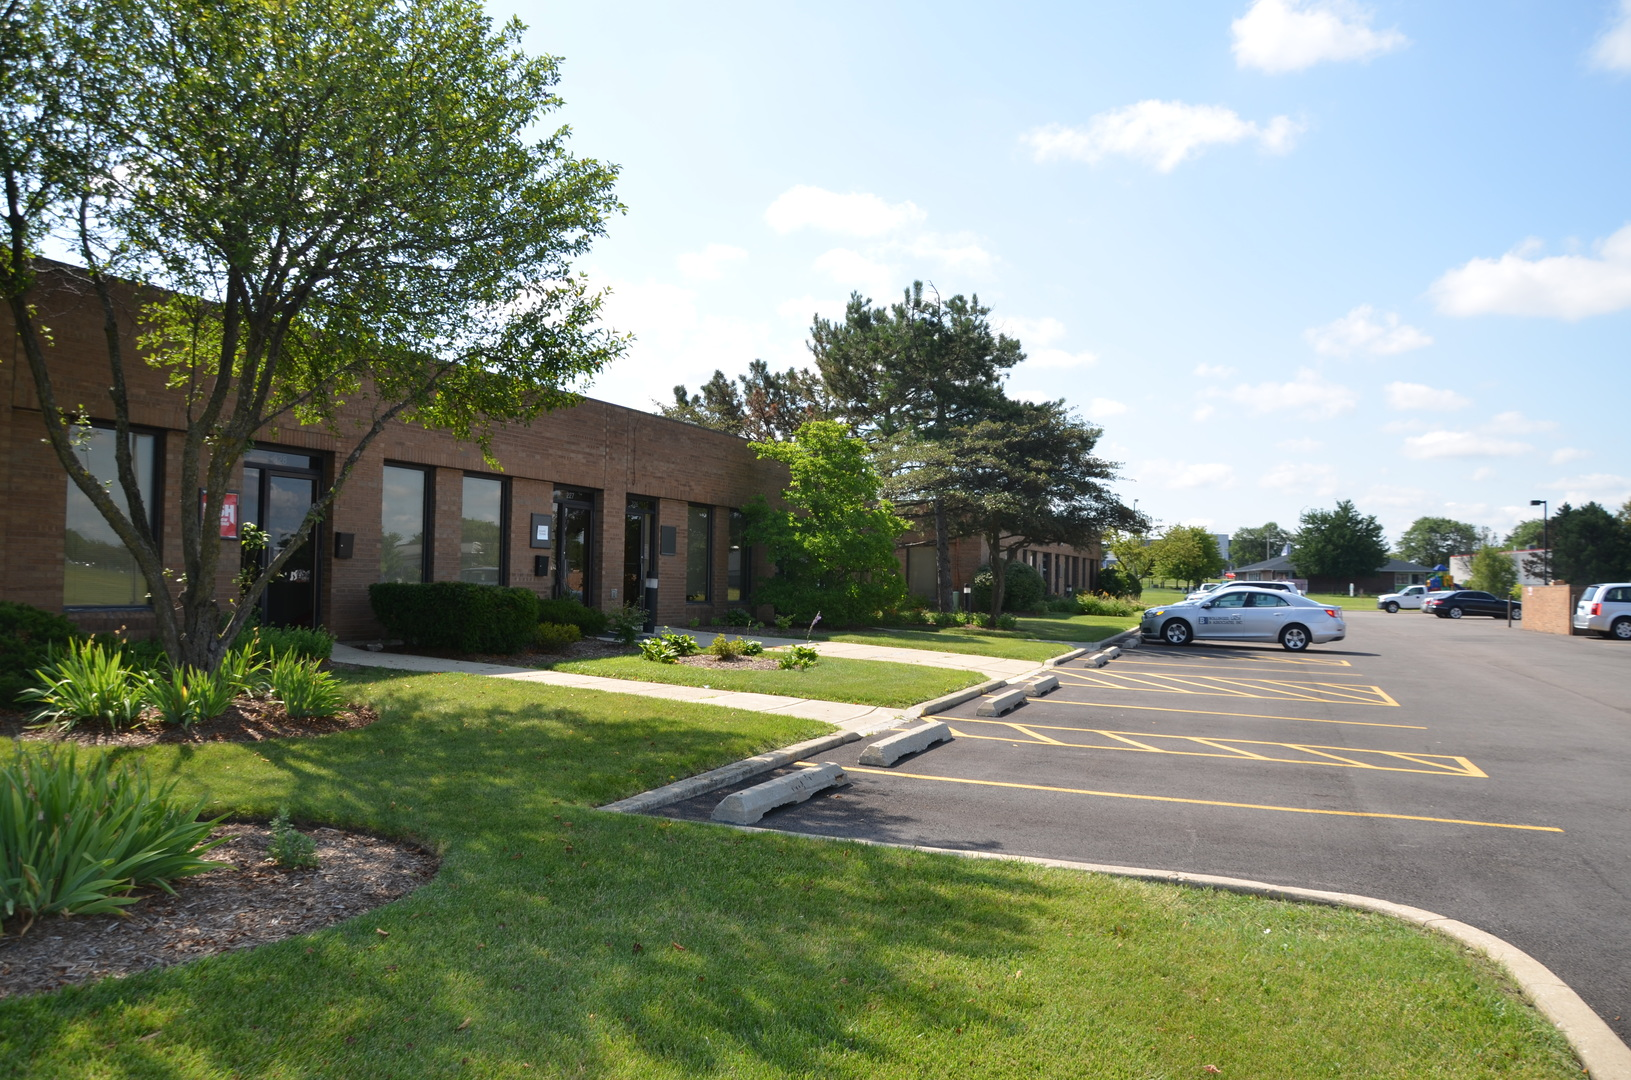 4255 Westbrook Unit Unit 215 ,Aurora, Illinois 60504